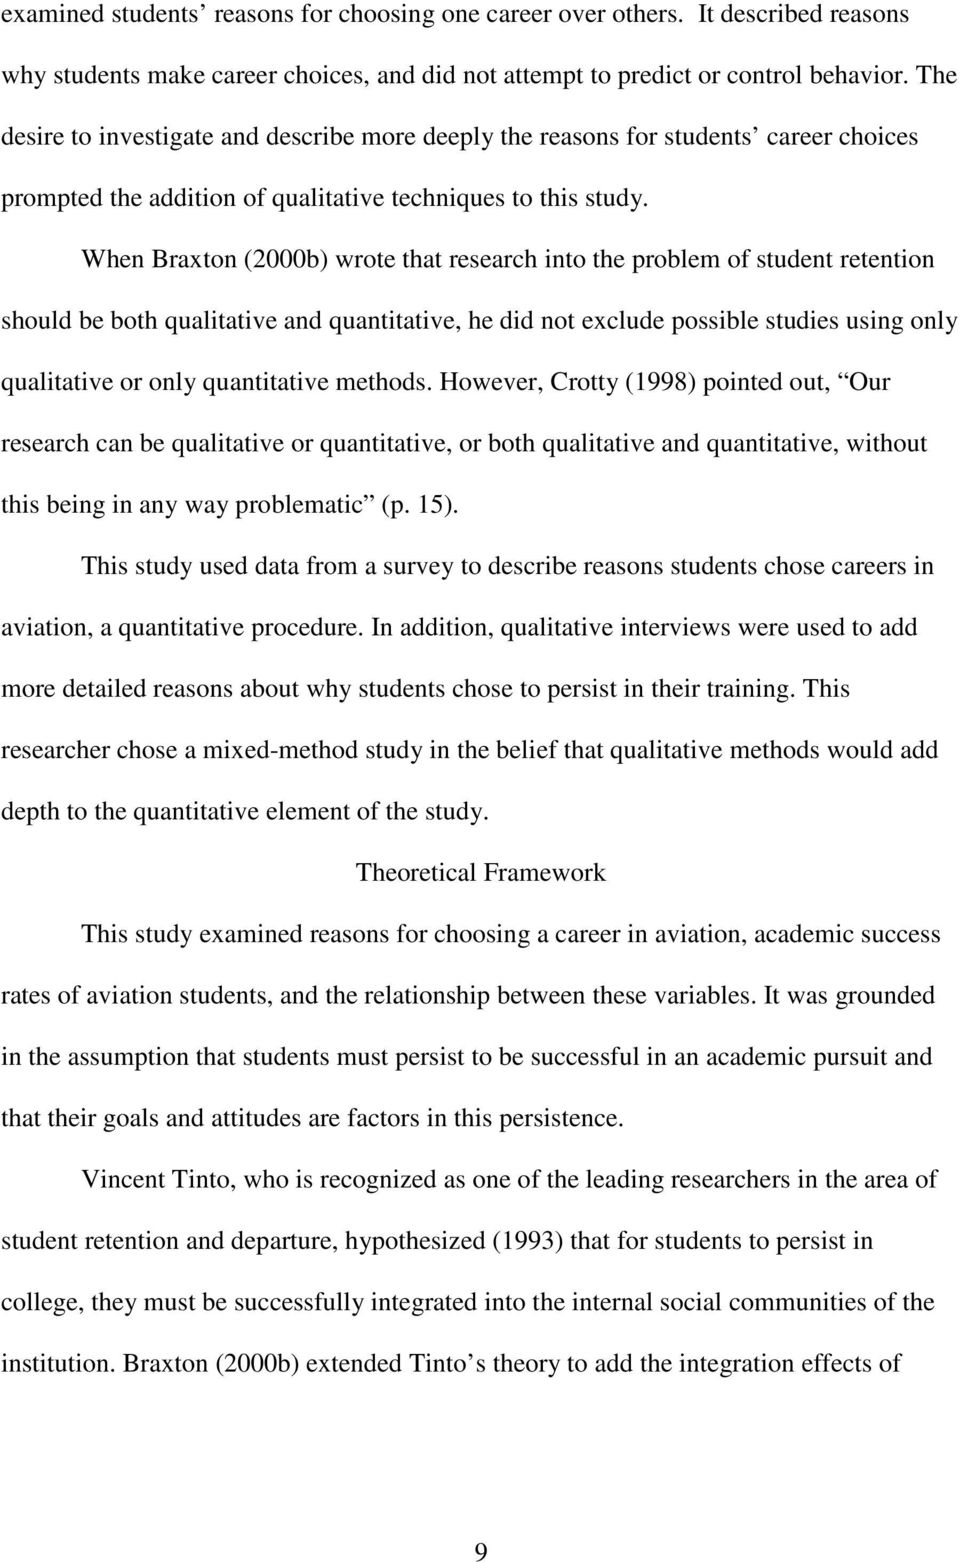 When Braxton (2000b) wrote that research into the problem of student retention should be both qualitative and quantitative, he did not exclude possible studies using only qualitative or only